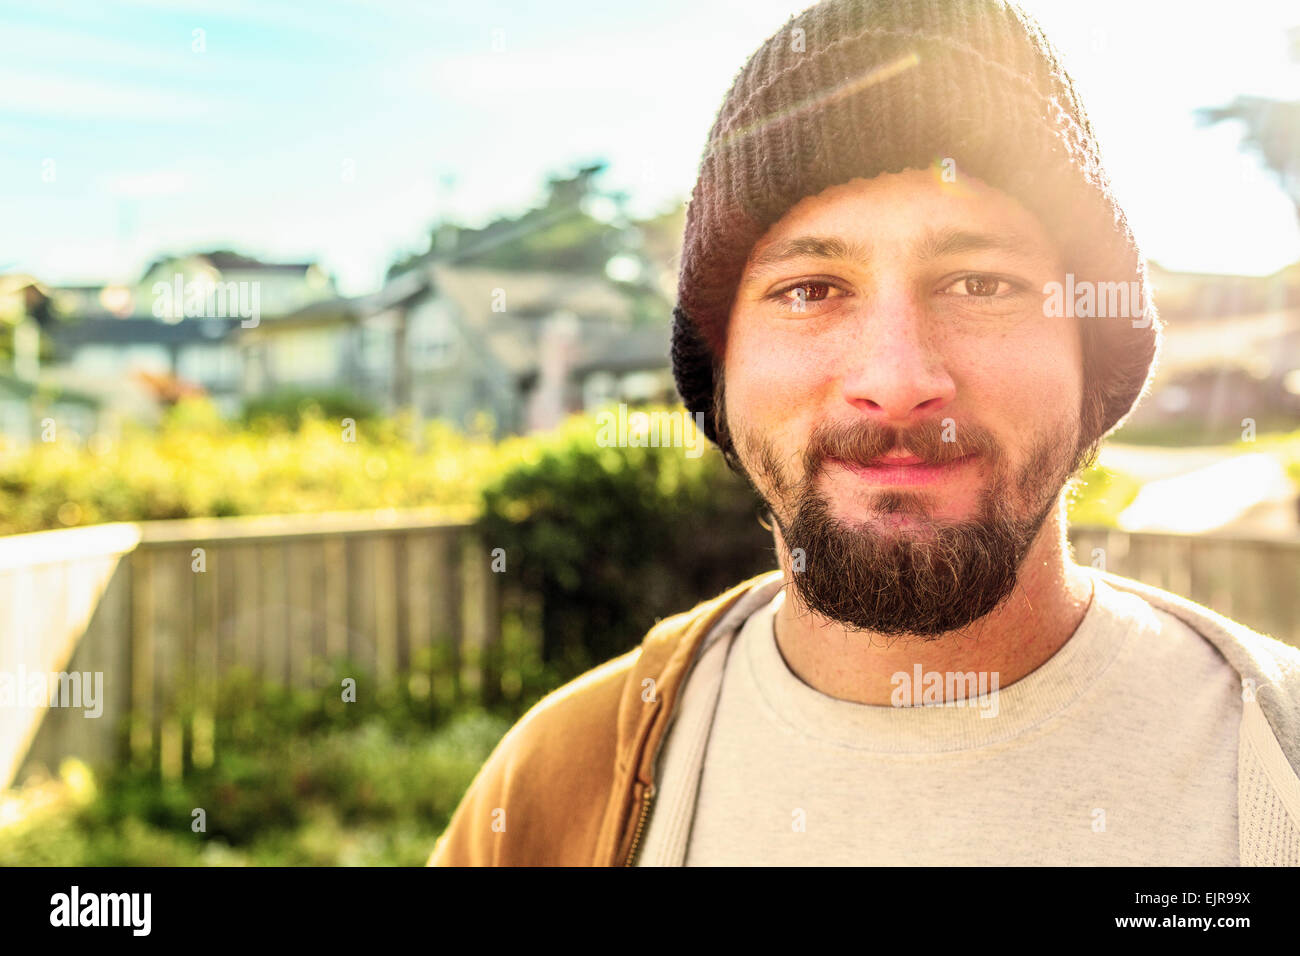 Caucasian man smiling in backyard Banque D'Images